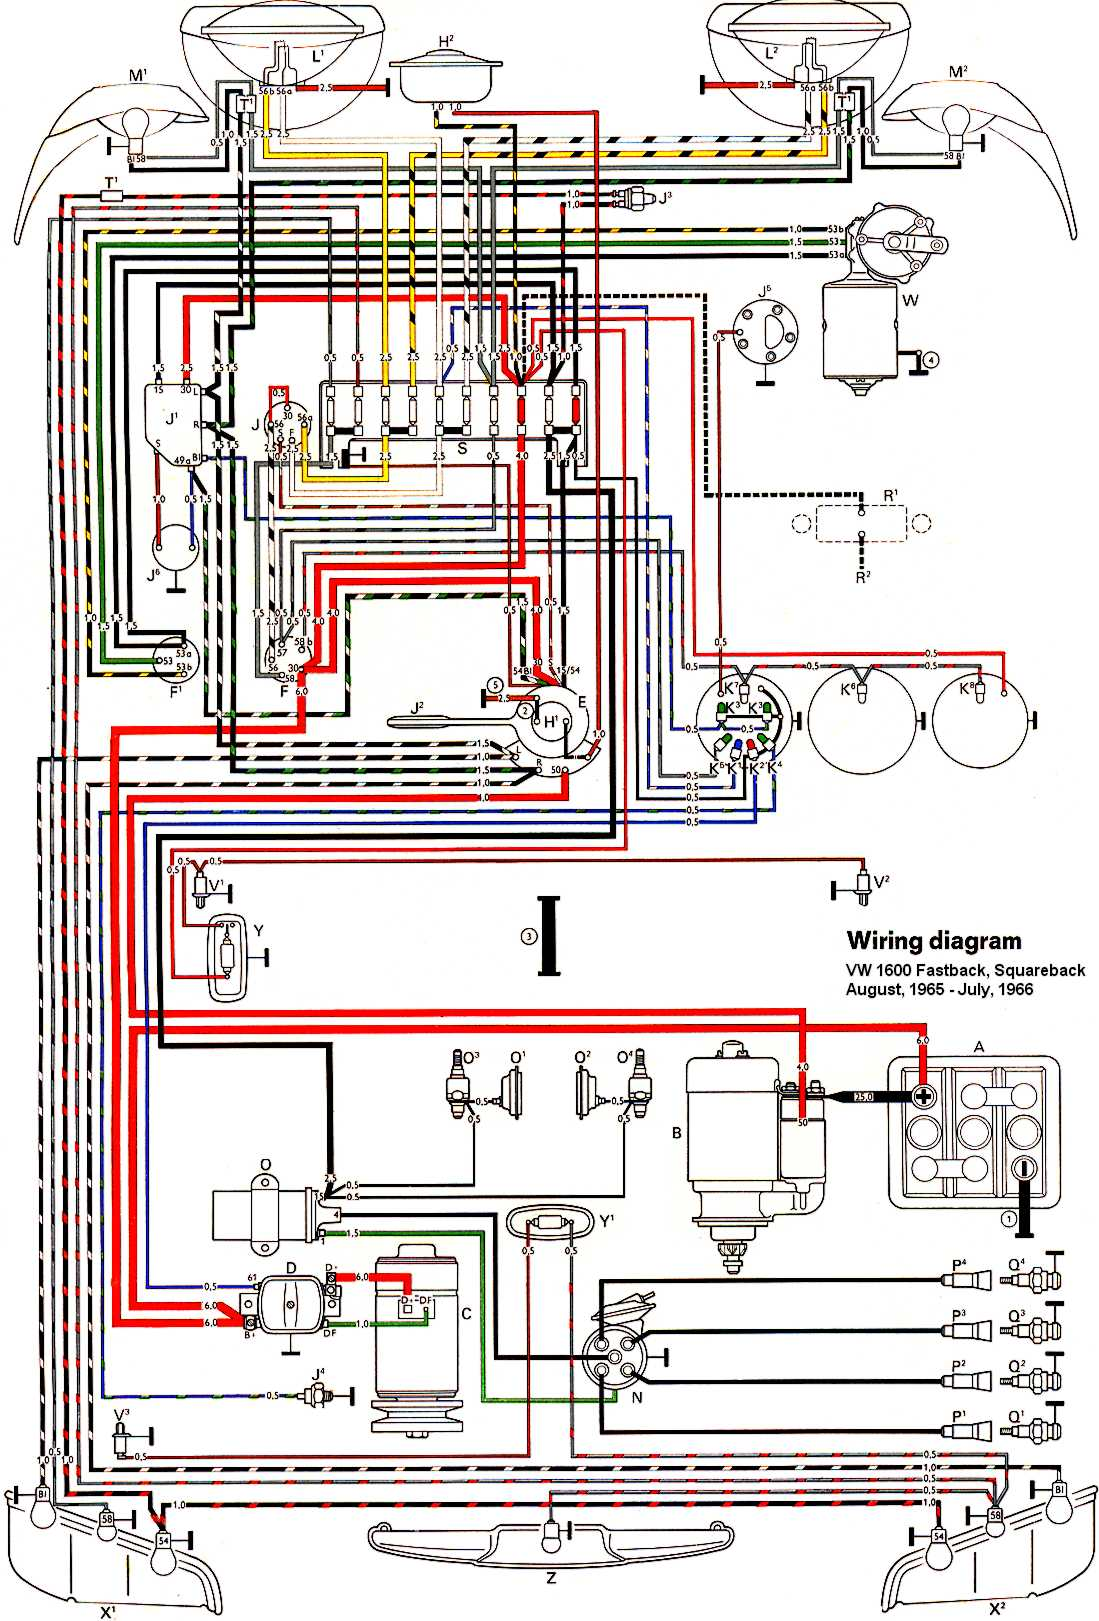 vw beetle generator wiring diagram thesamba gallery 2001 vw beetle engine wiring diagram